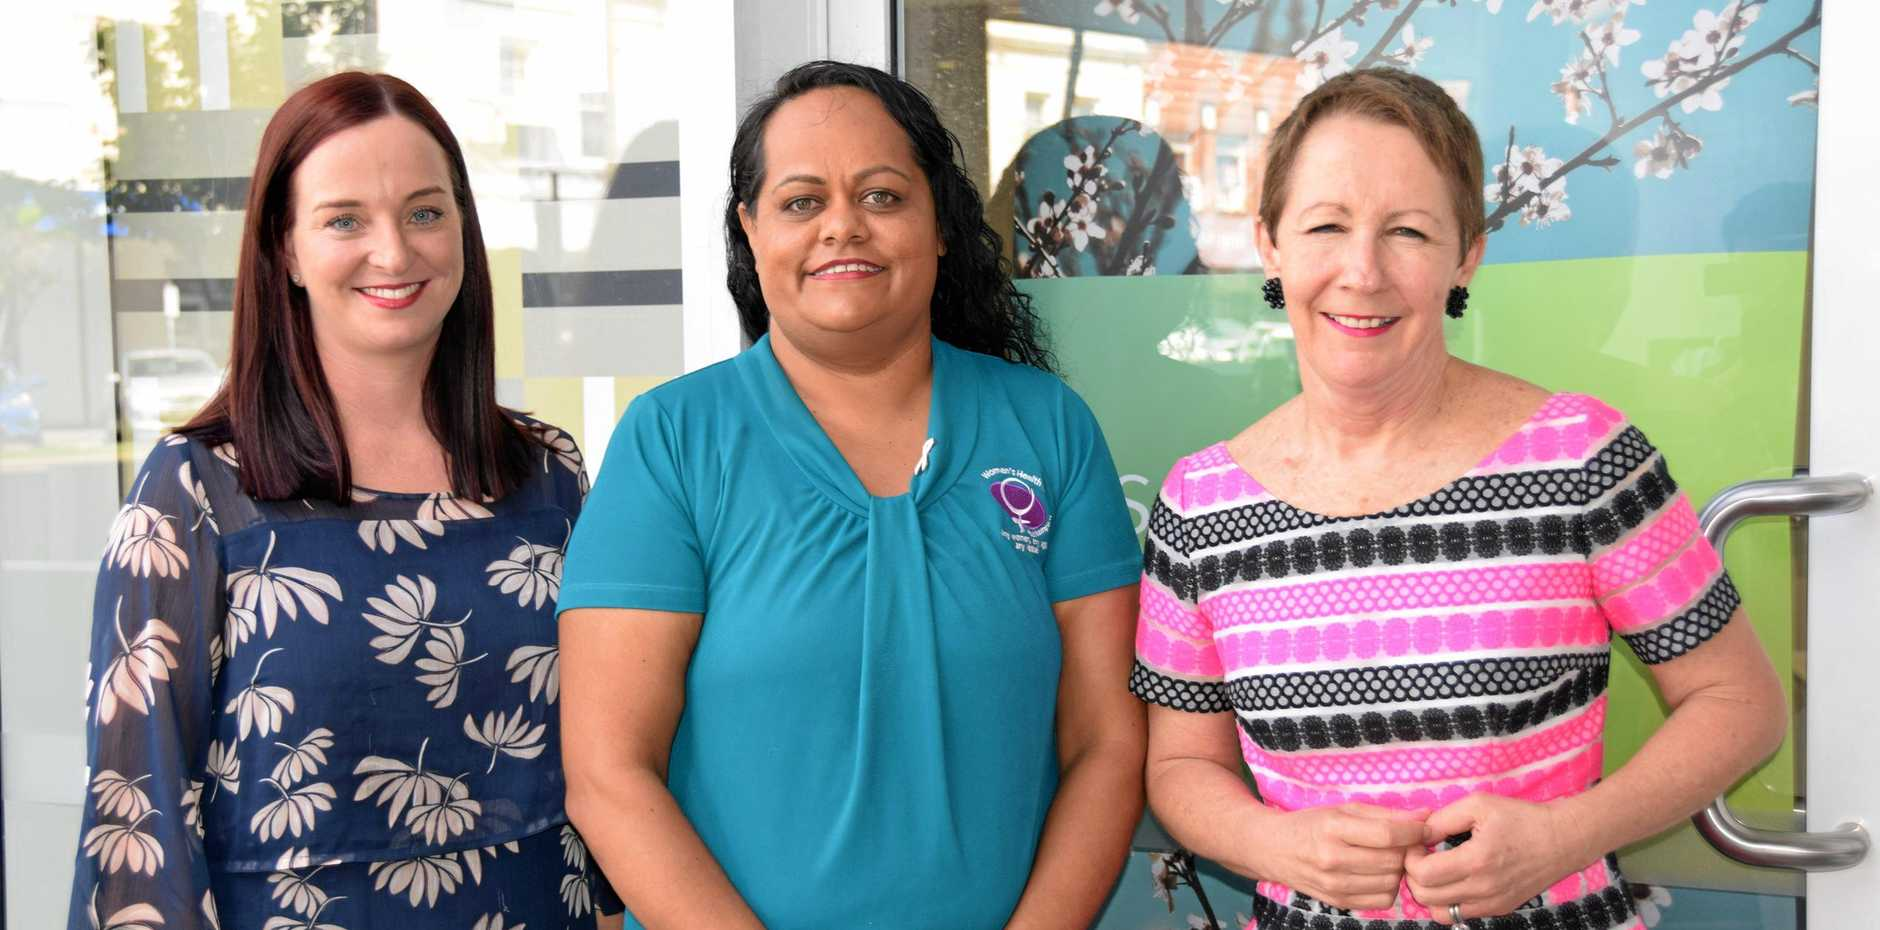 SHARE YOUR EXPERIENCE: Member for Keppel Brittany Lauga, Rockhampton indigenous sexual assault counsellor and Women's Health Centre spokeswoman Charmaine Law and Minister for the Prevention of Domestic and Family Violence Di Farmer.